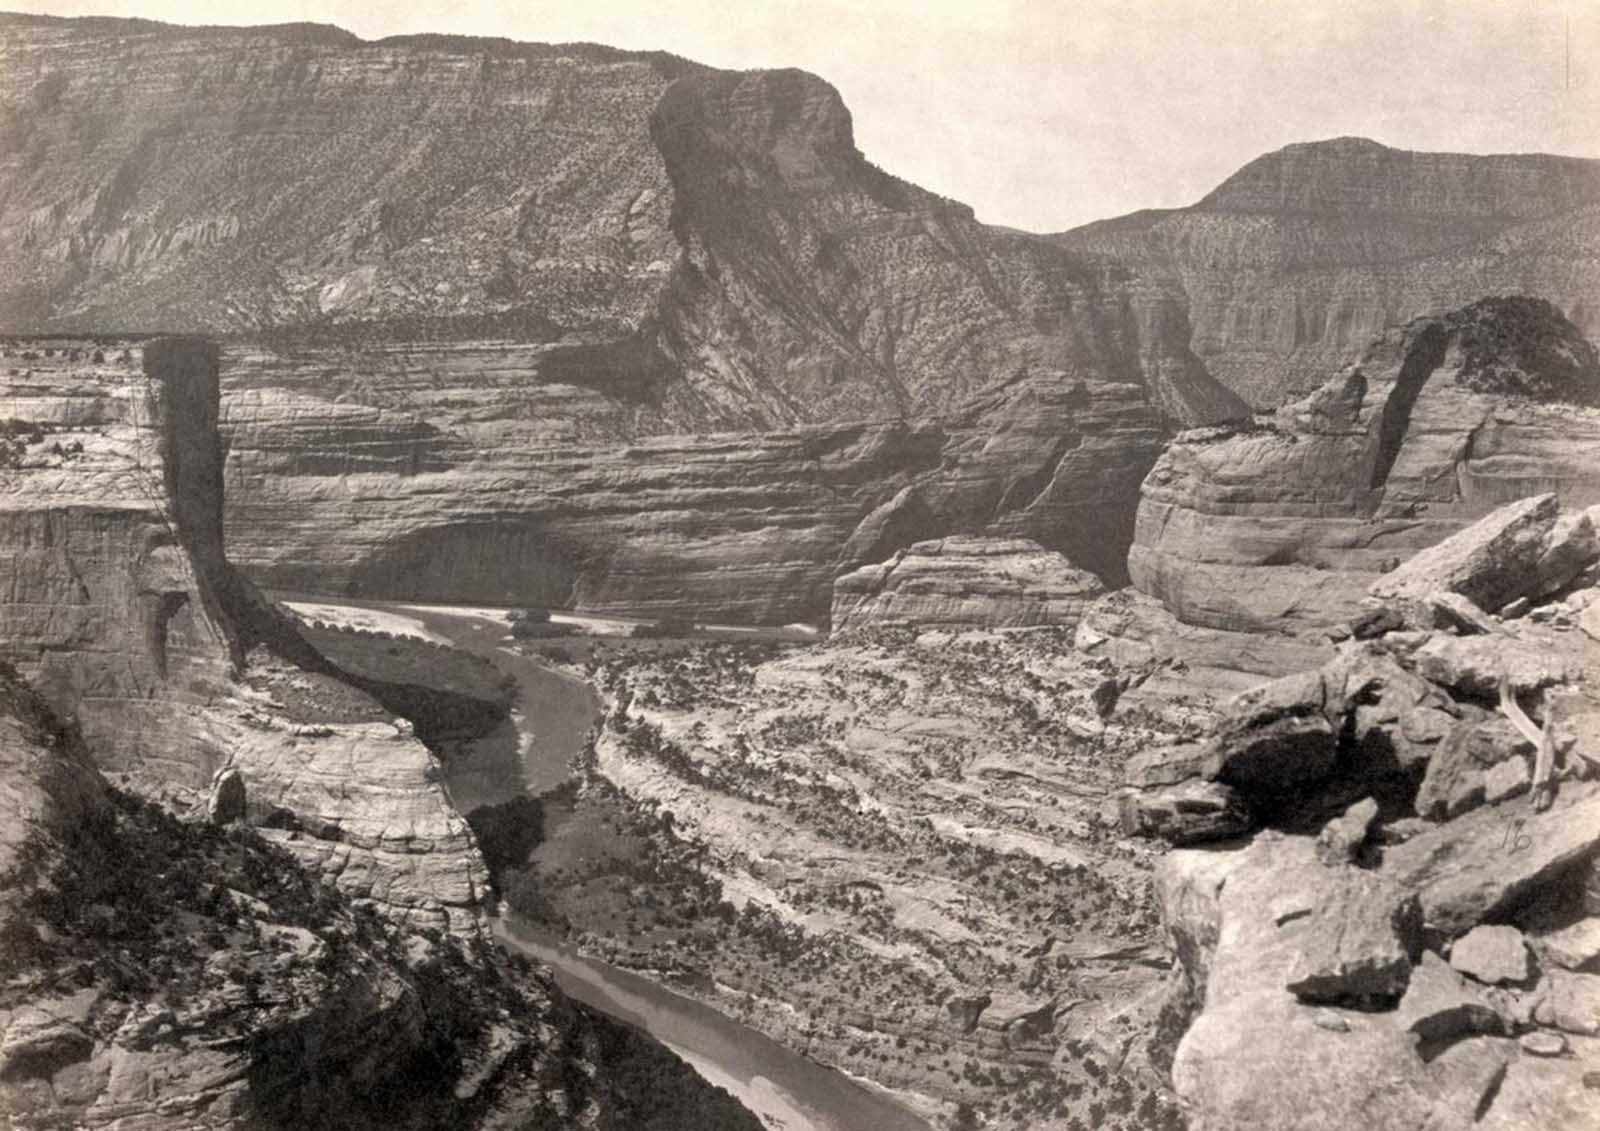 The junction of Green and Yampah Canyons, in Utah, in 1872.